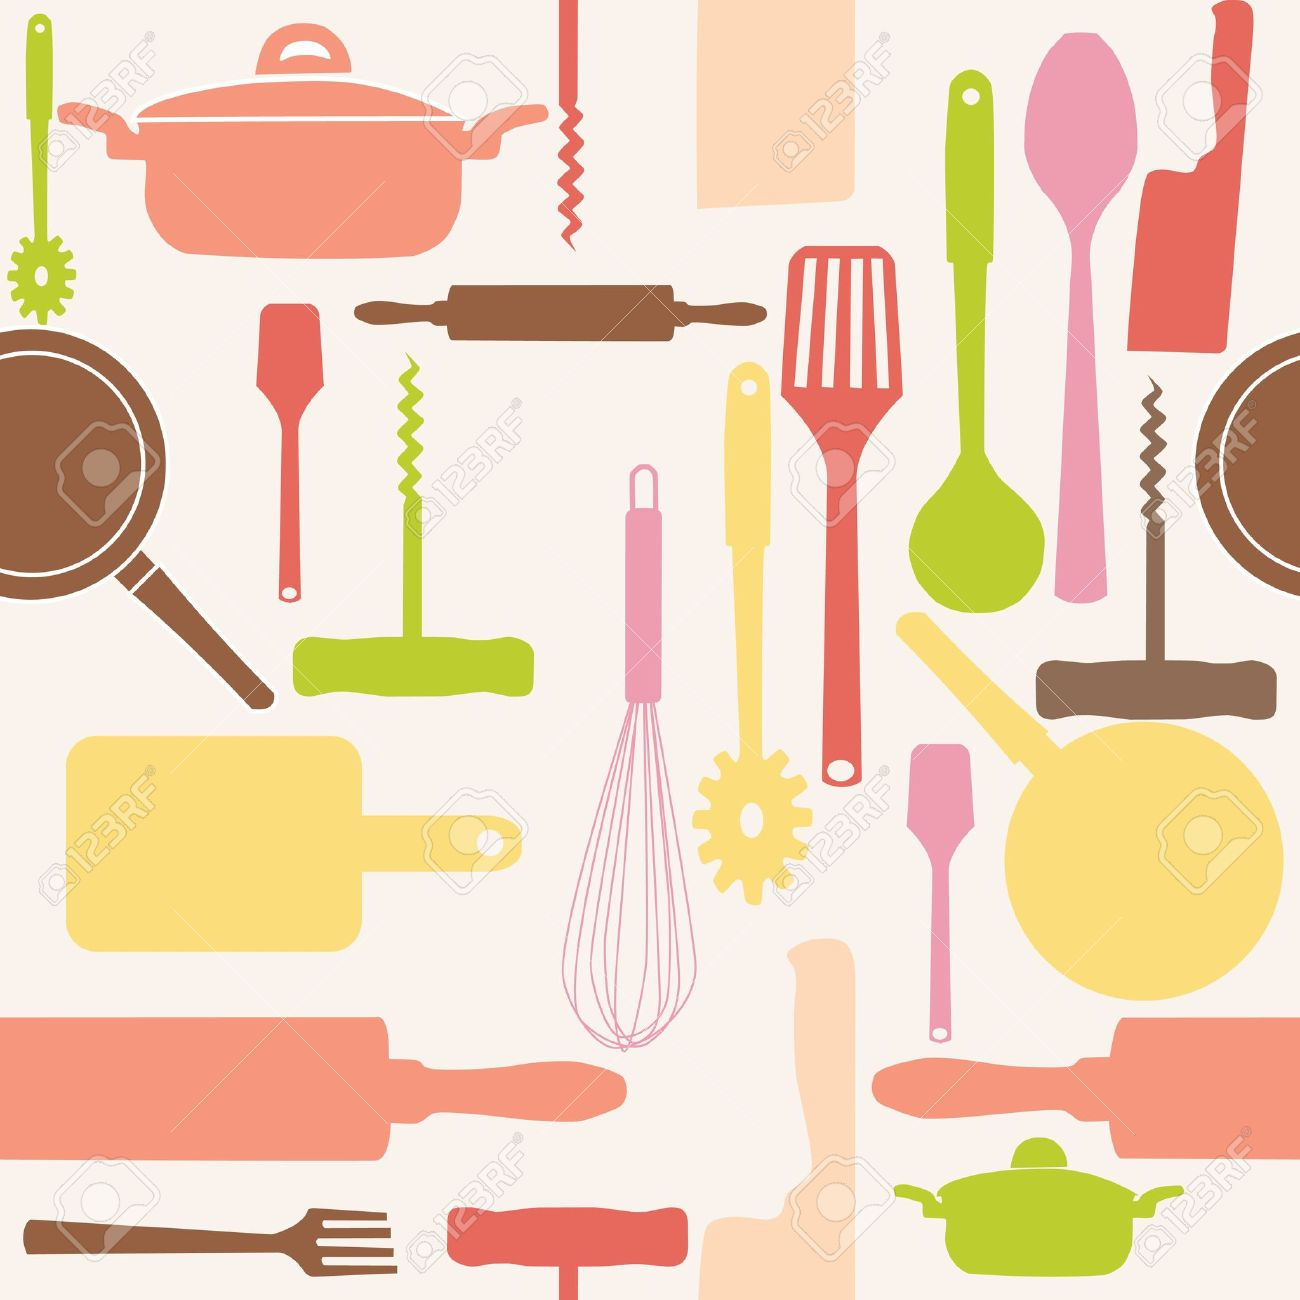 Cooking tools clipart.